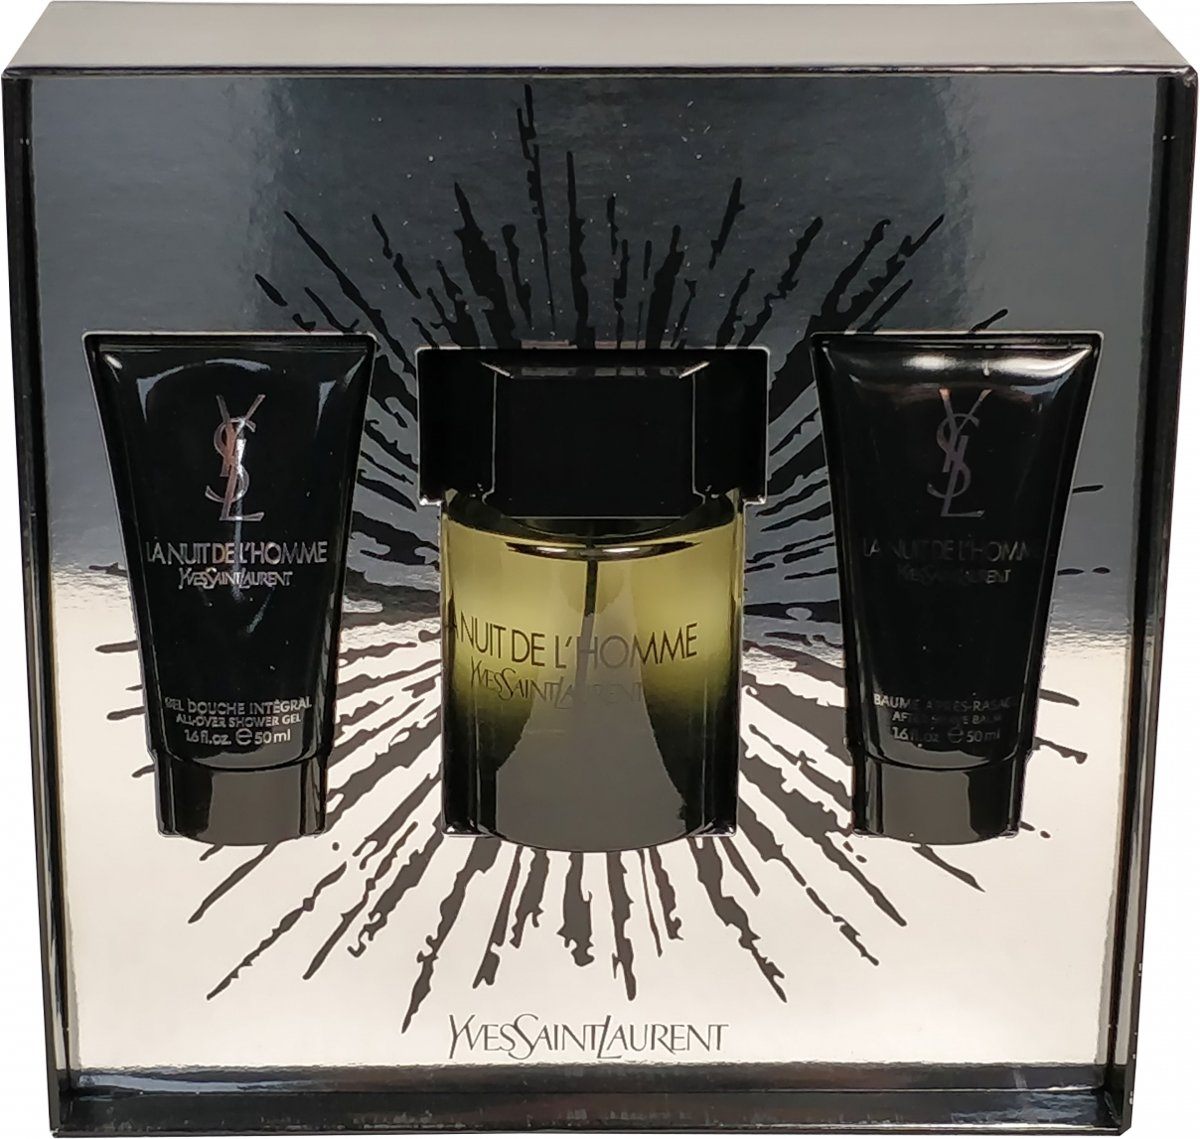 Yves Saint Laurent - Eau de toilette - La nuit de Lhomme 100ml eau de toilette + 50ml aftershave balm + 50ml showergel - Gifts